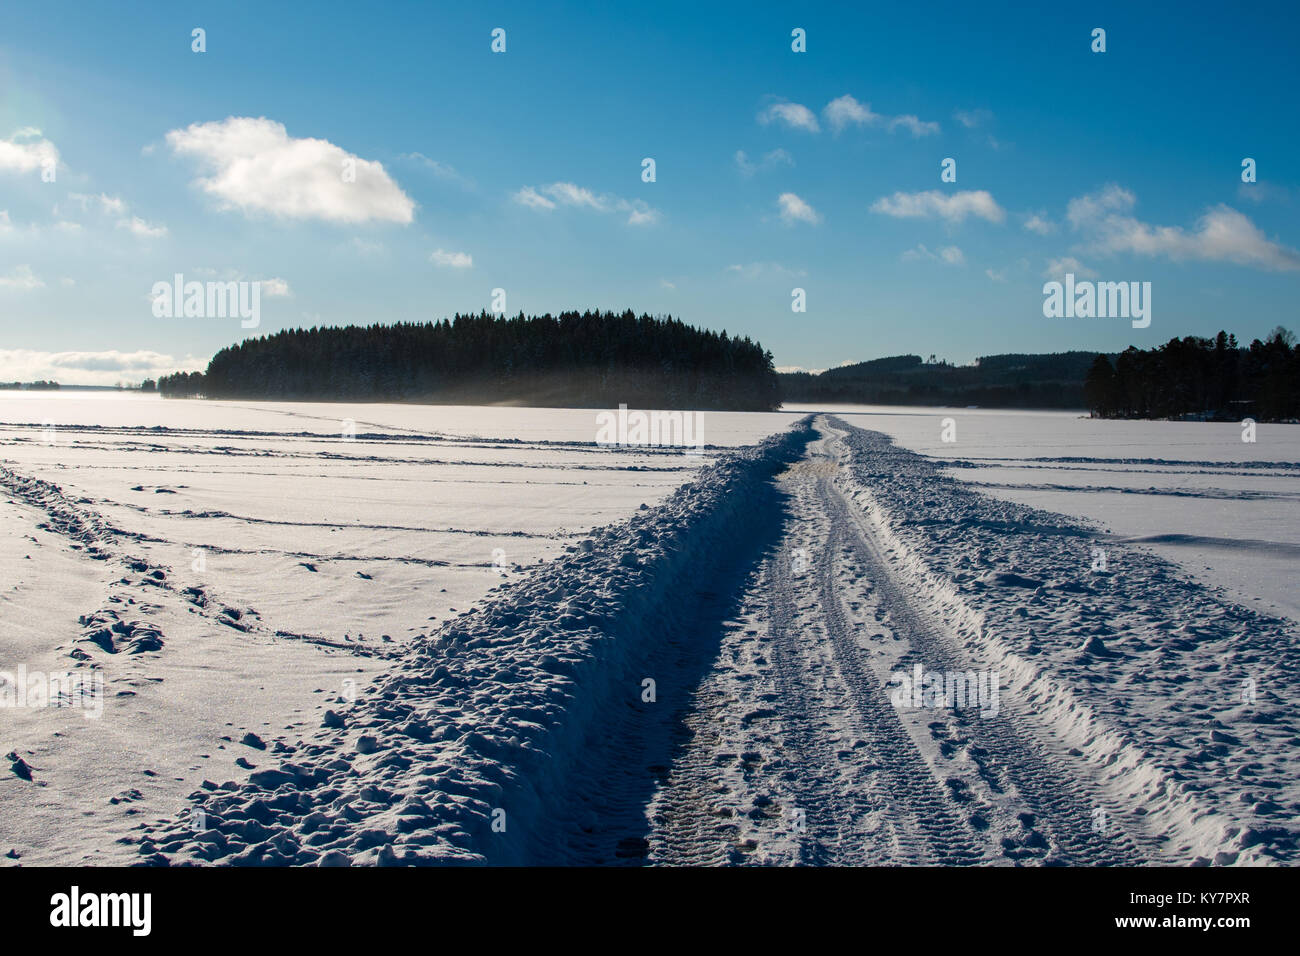 A narrow road in snow over a lake in Sweden - Stock Image